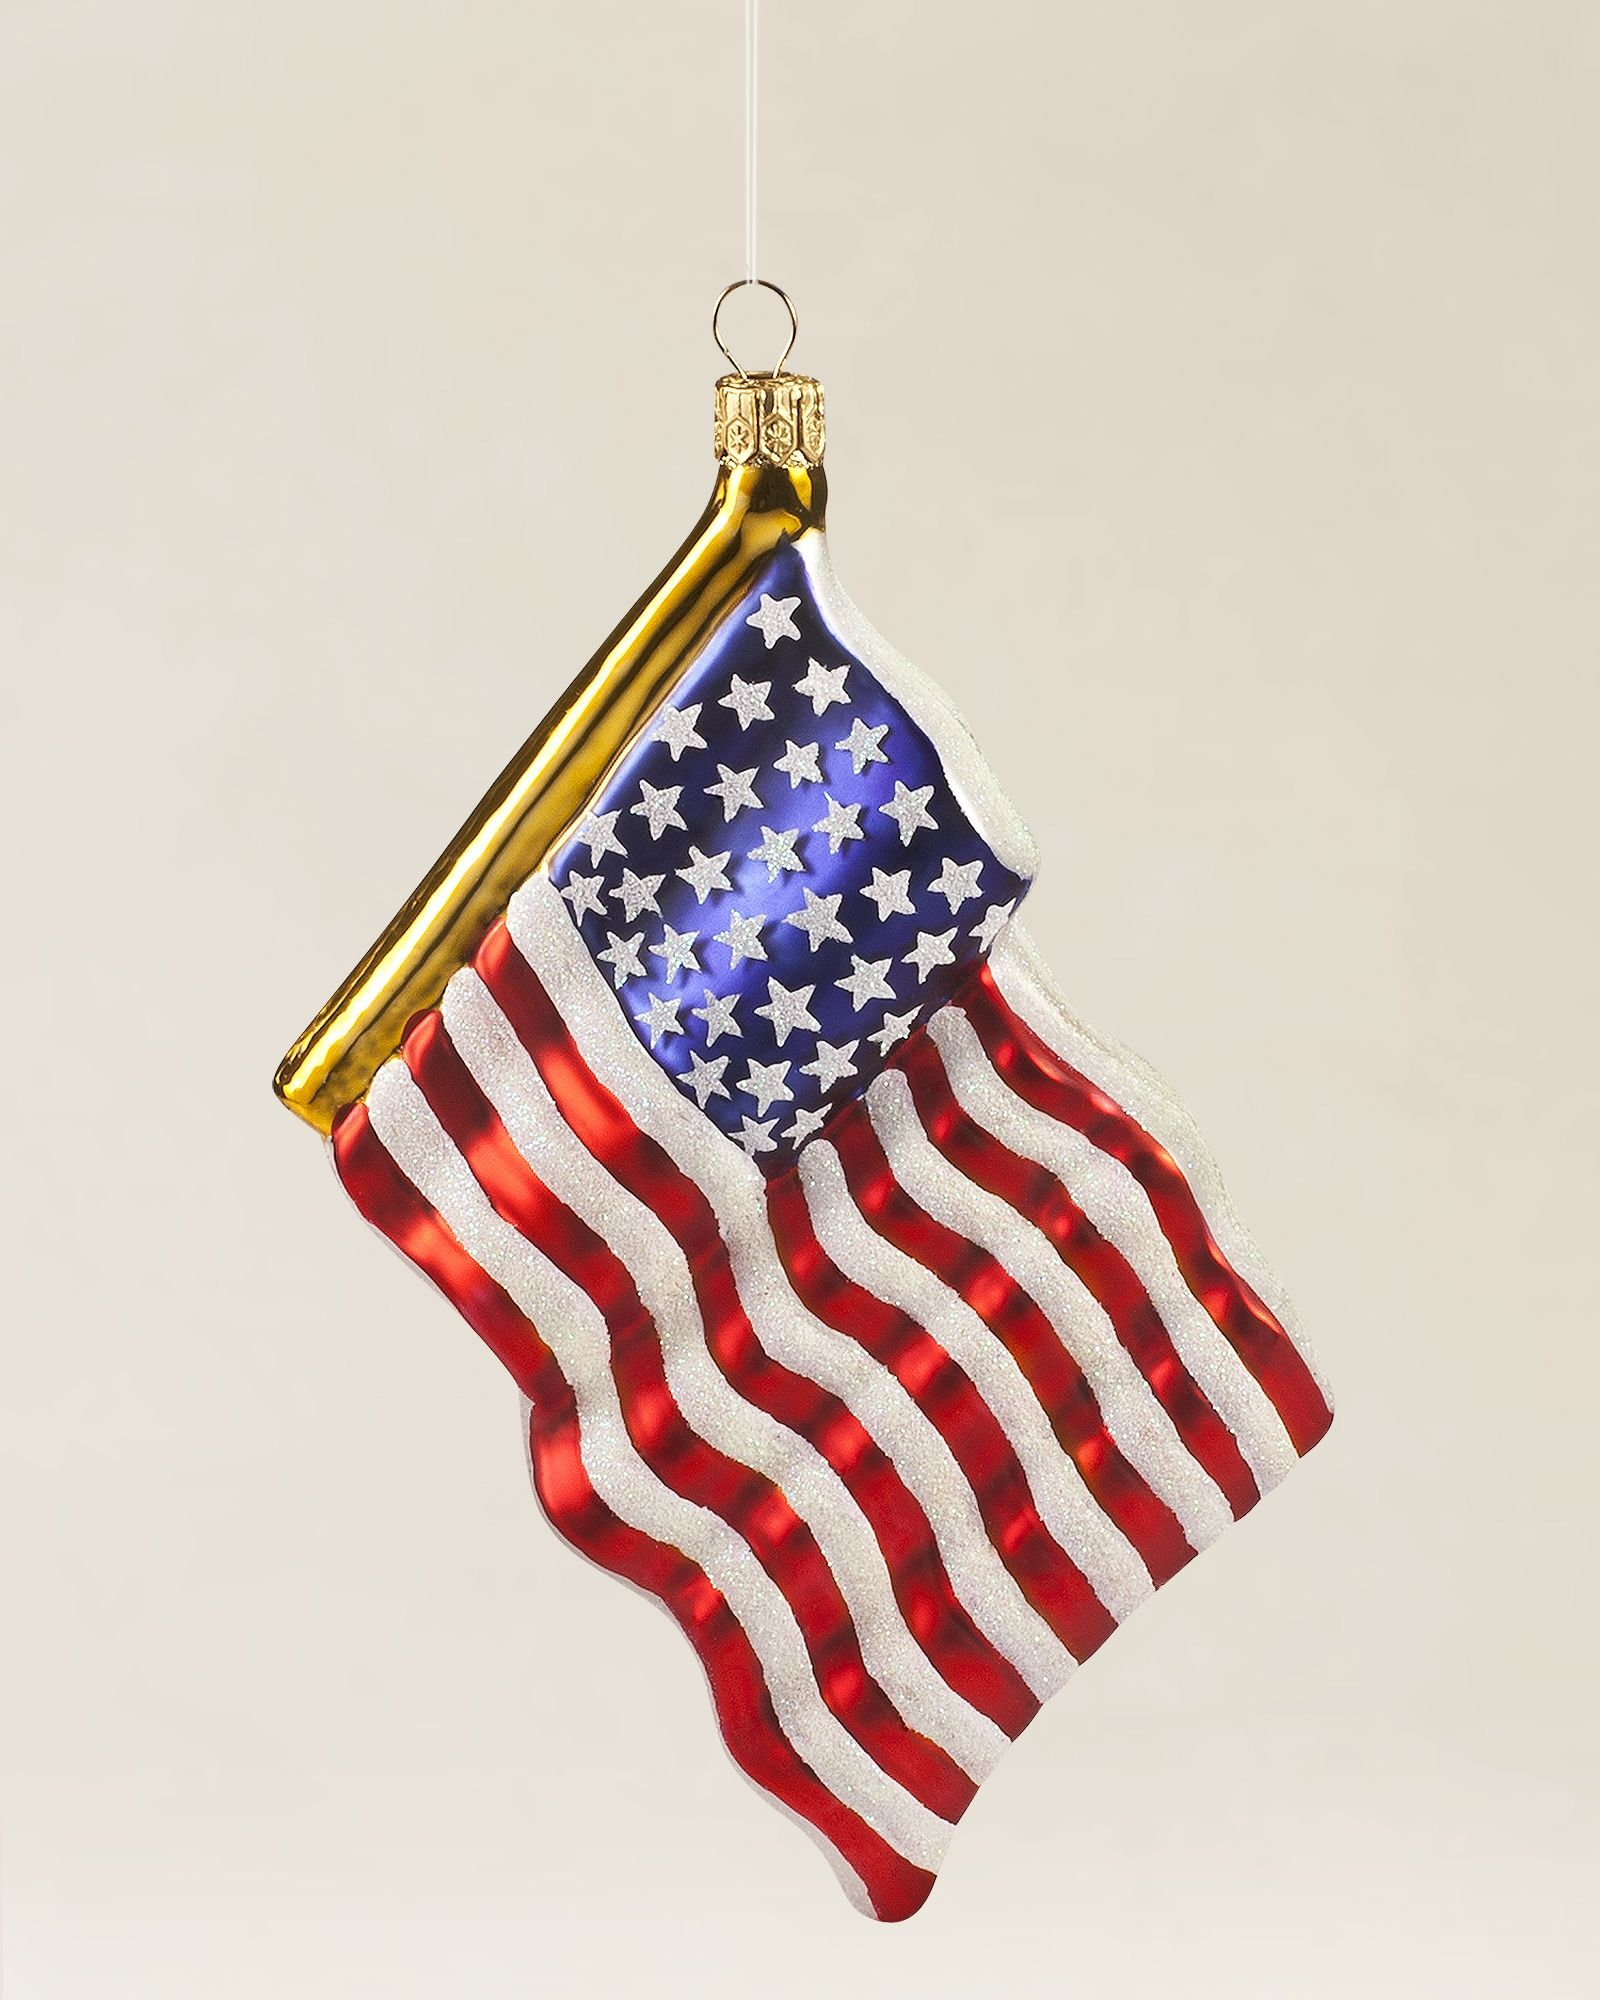 American Flag Blown Glass Ornament